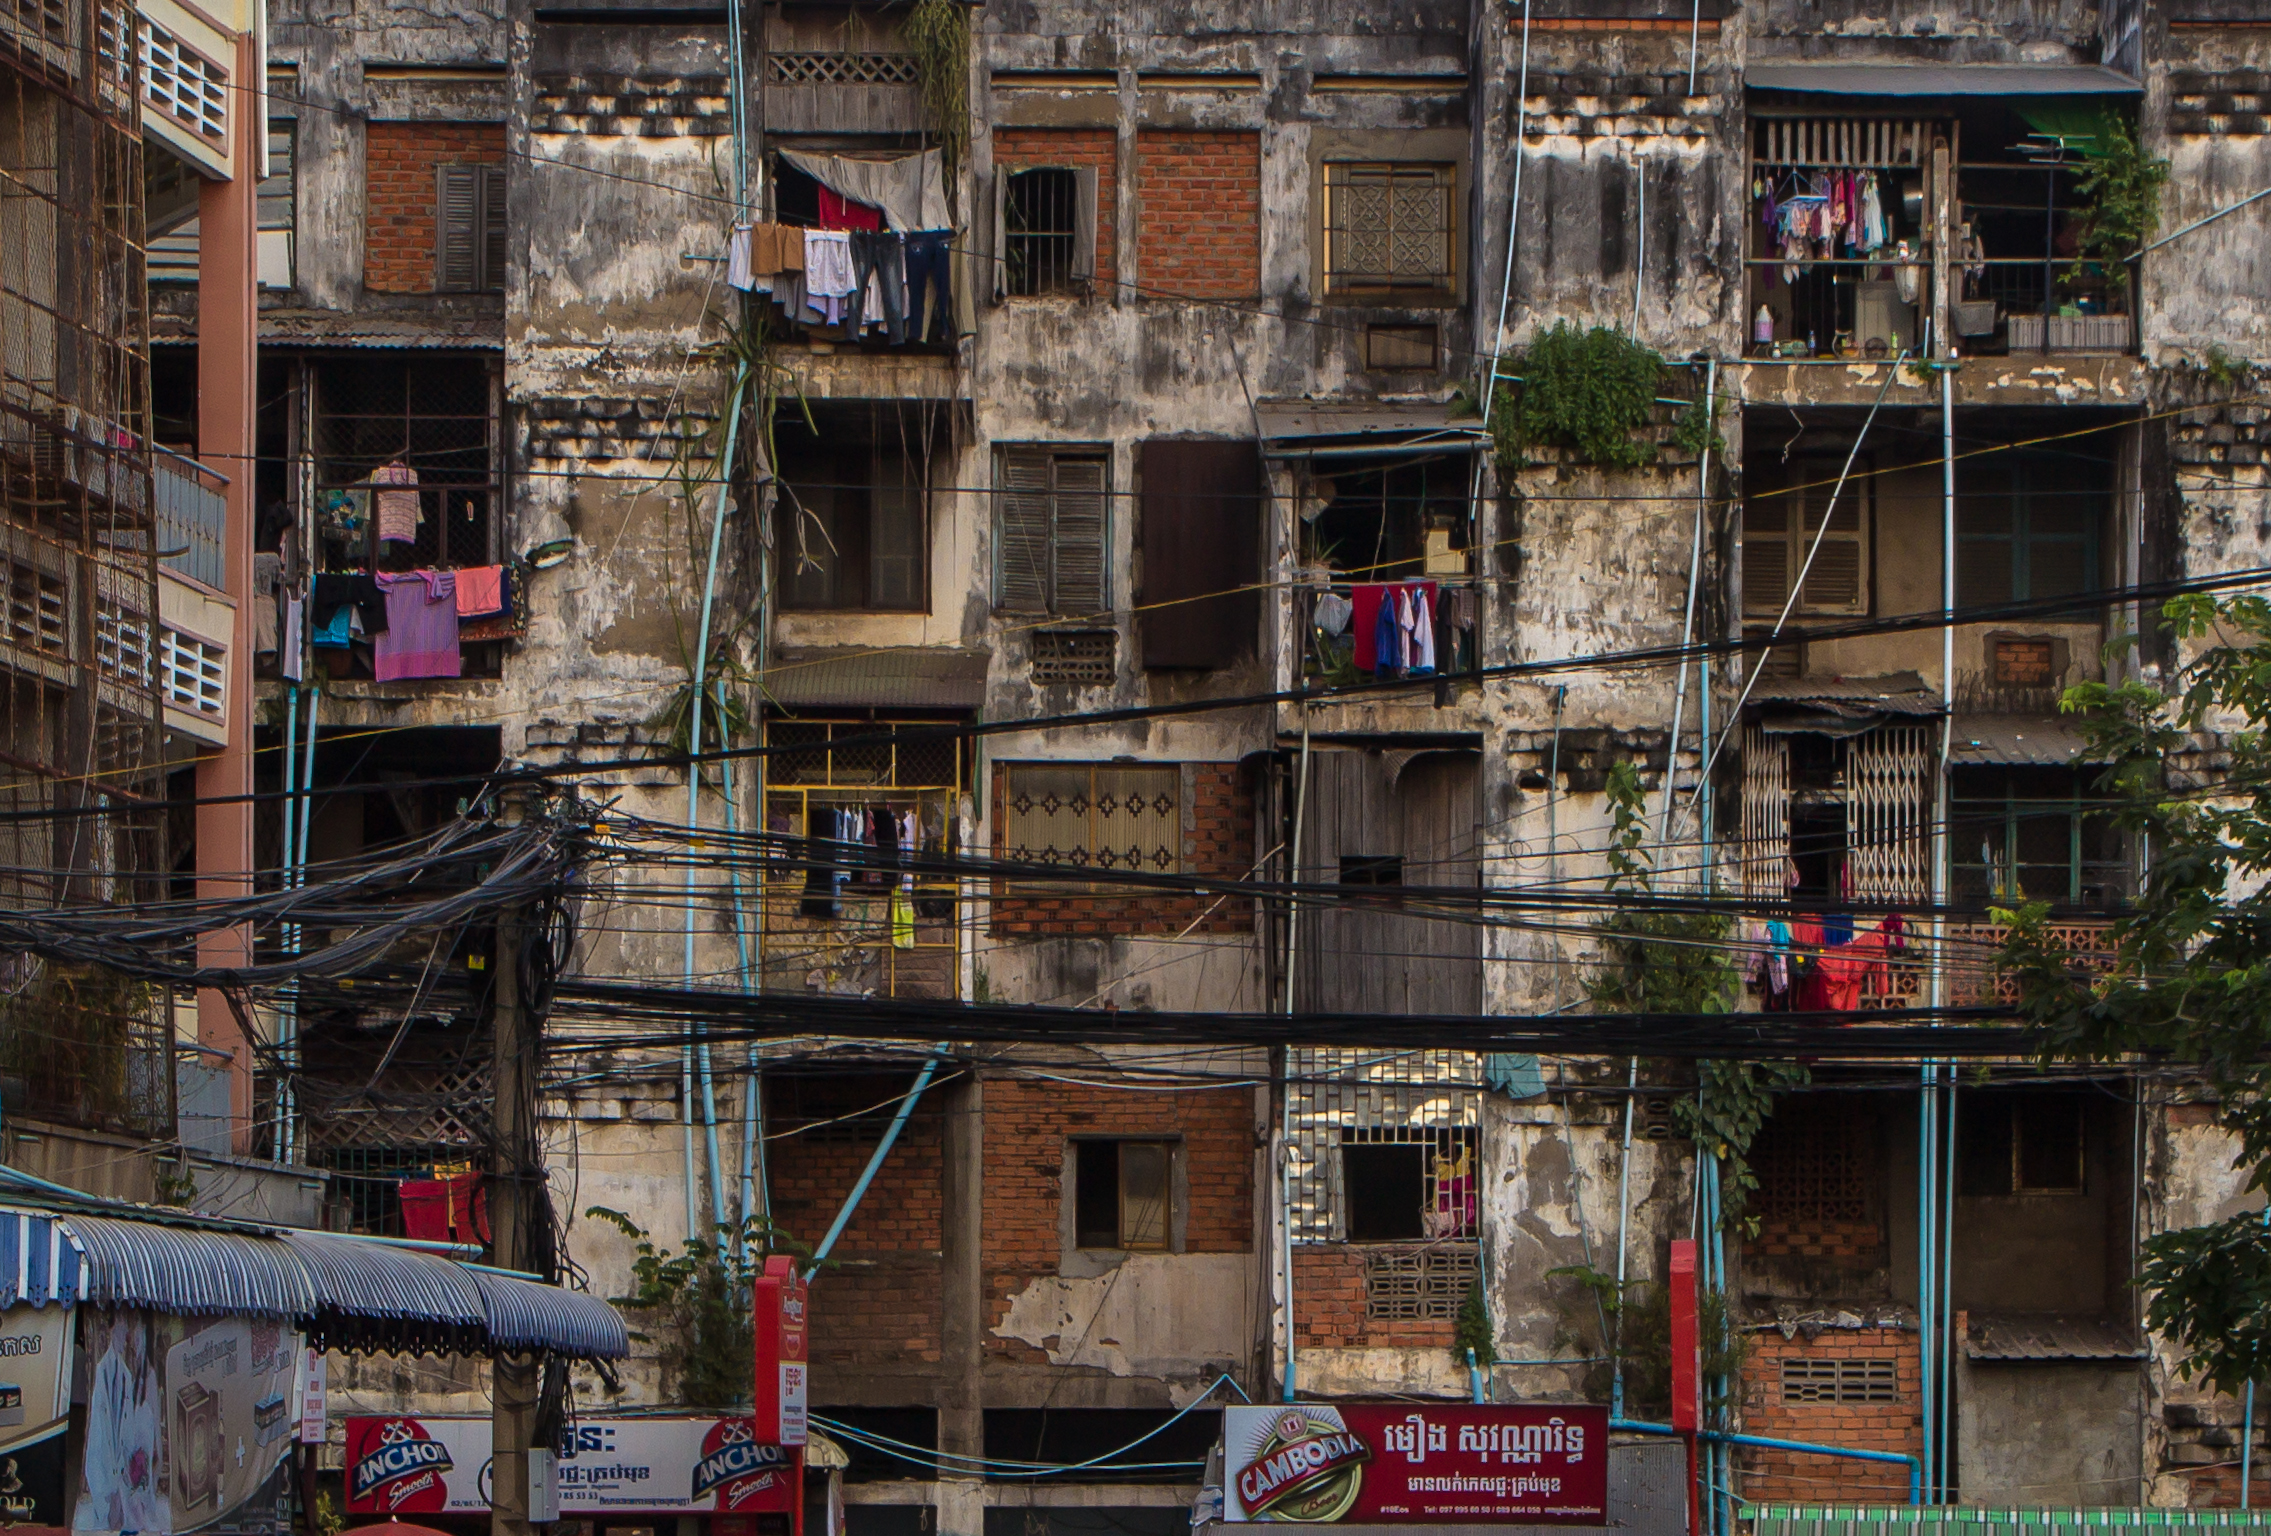 <p>An unfinished housing project now densely occupied in Phnom Penh. Flickr/Jonas Hansel</p>